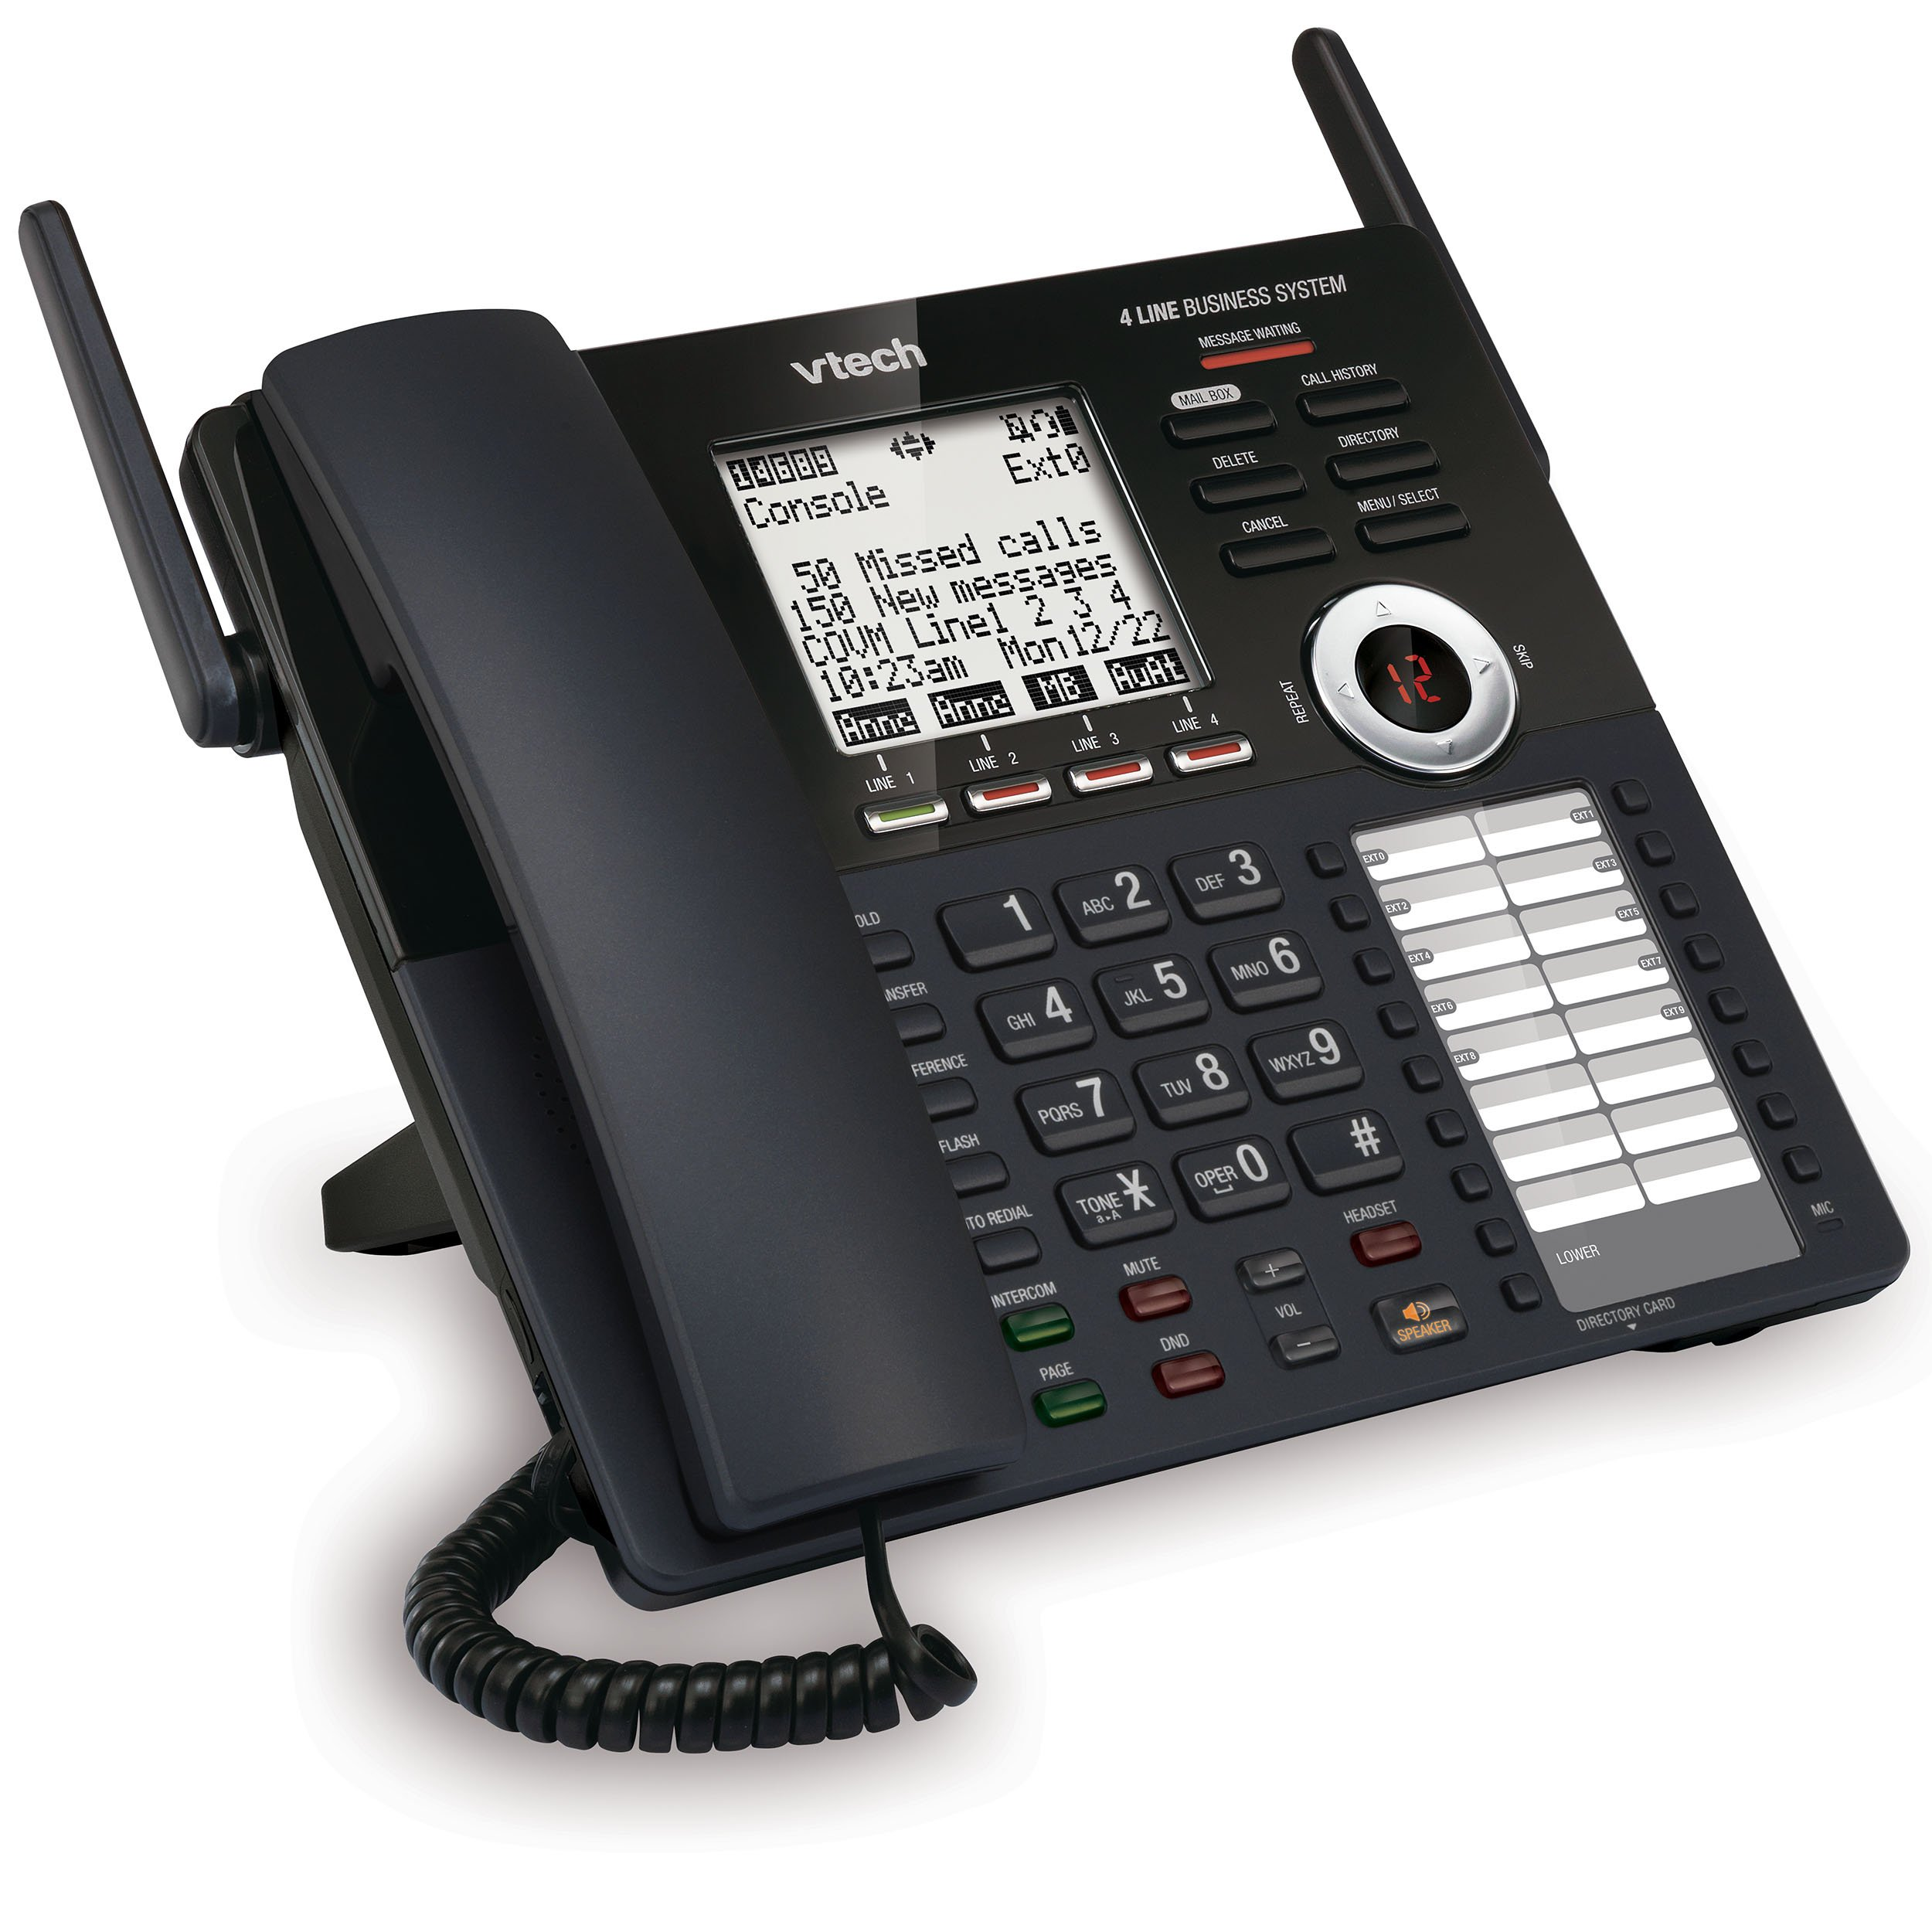 VTech AM18447 Main Console 4-Line Expandable Small Business Office Phone System with Answering Machine, Intercom, Auto Attendant & Music on Hold